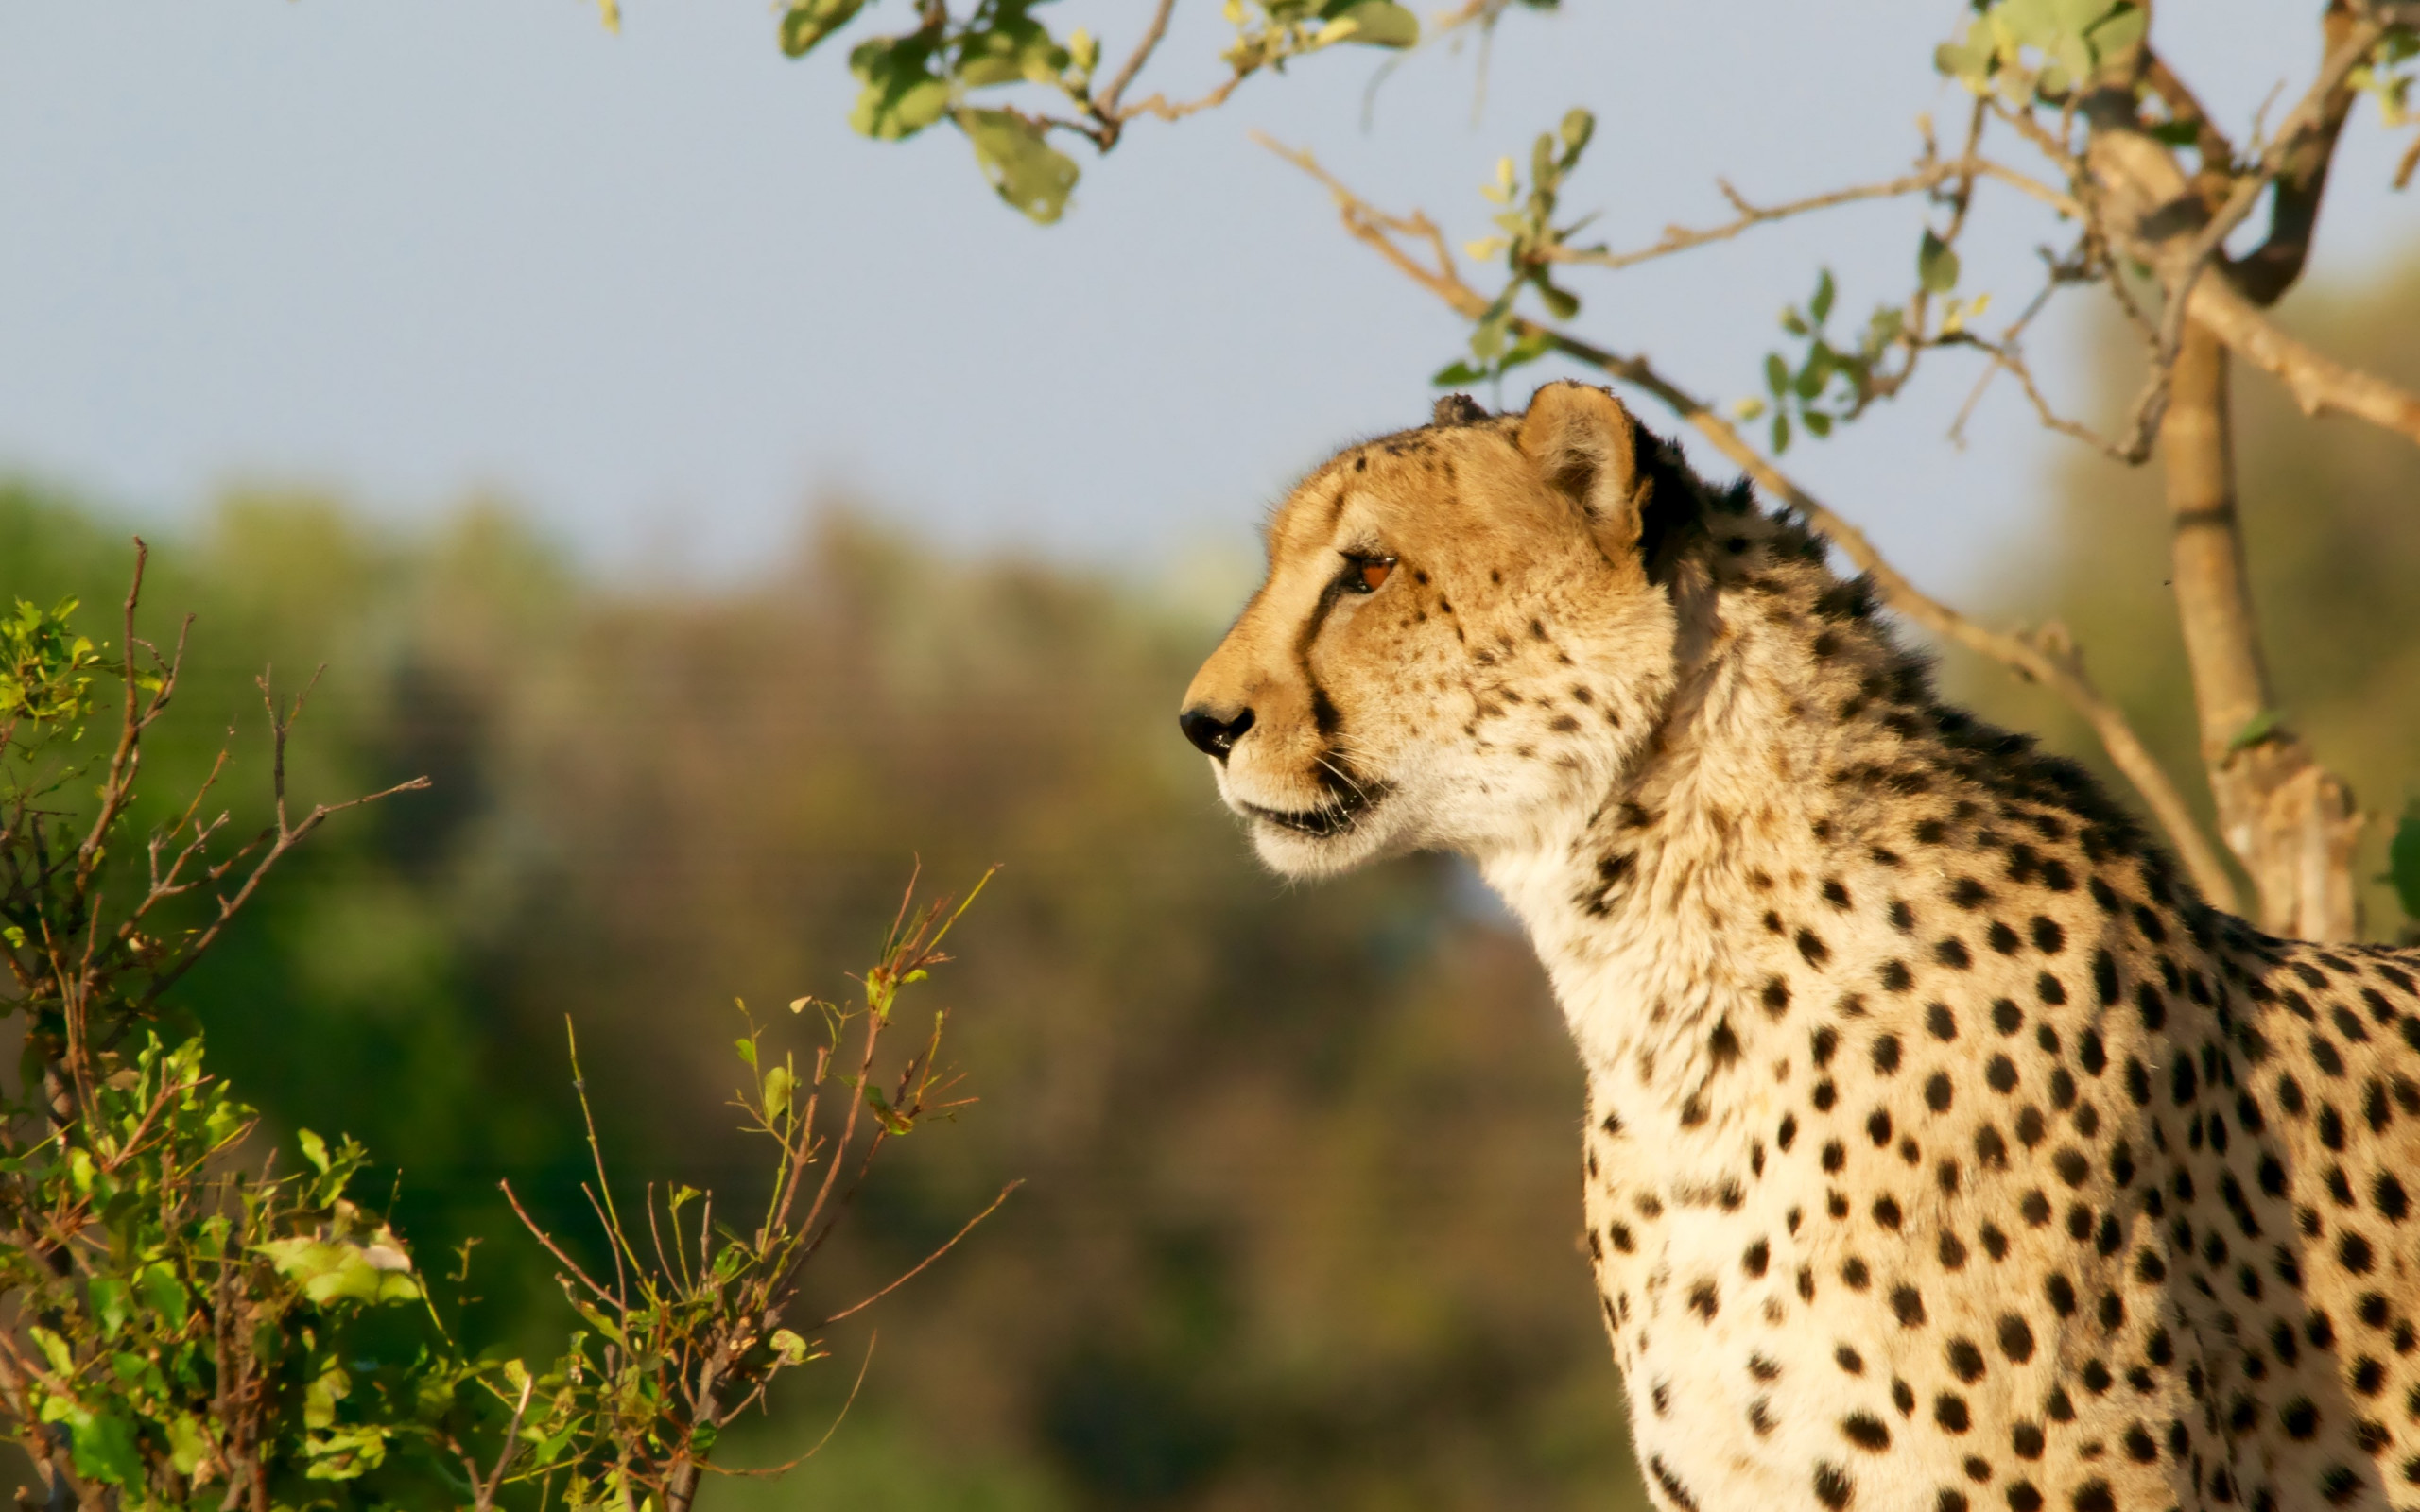 Cheetah in Ngamiland East, Botswana wallpaper 2560x1600